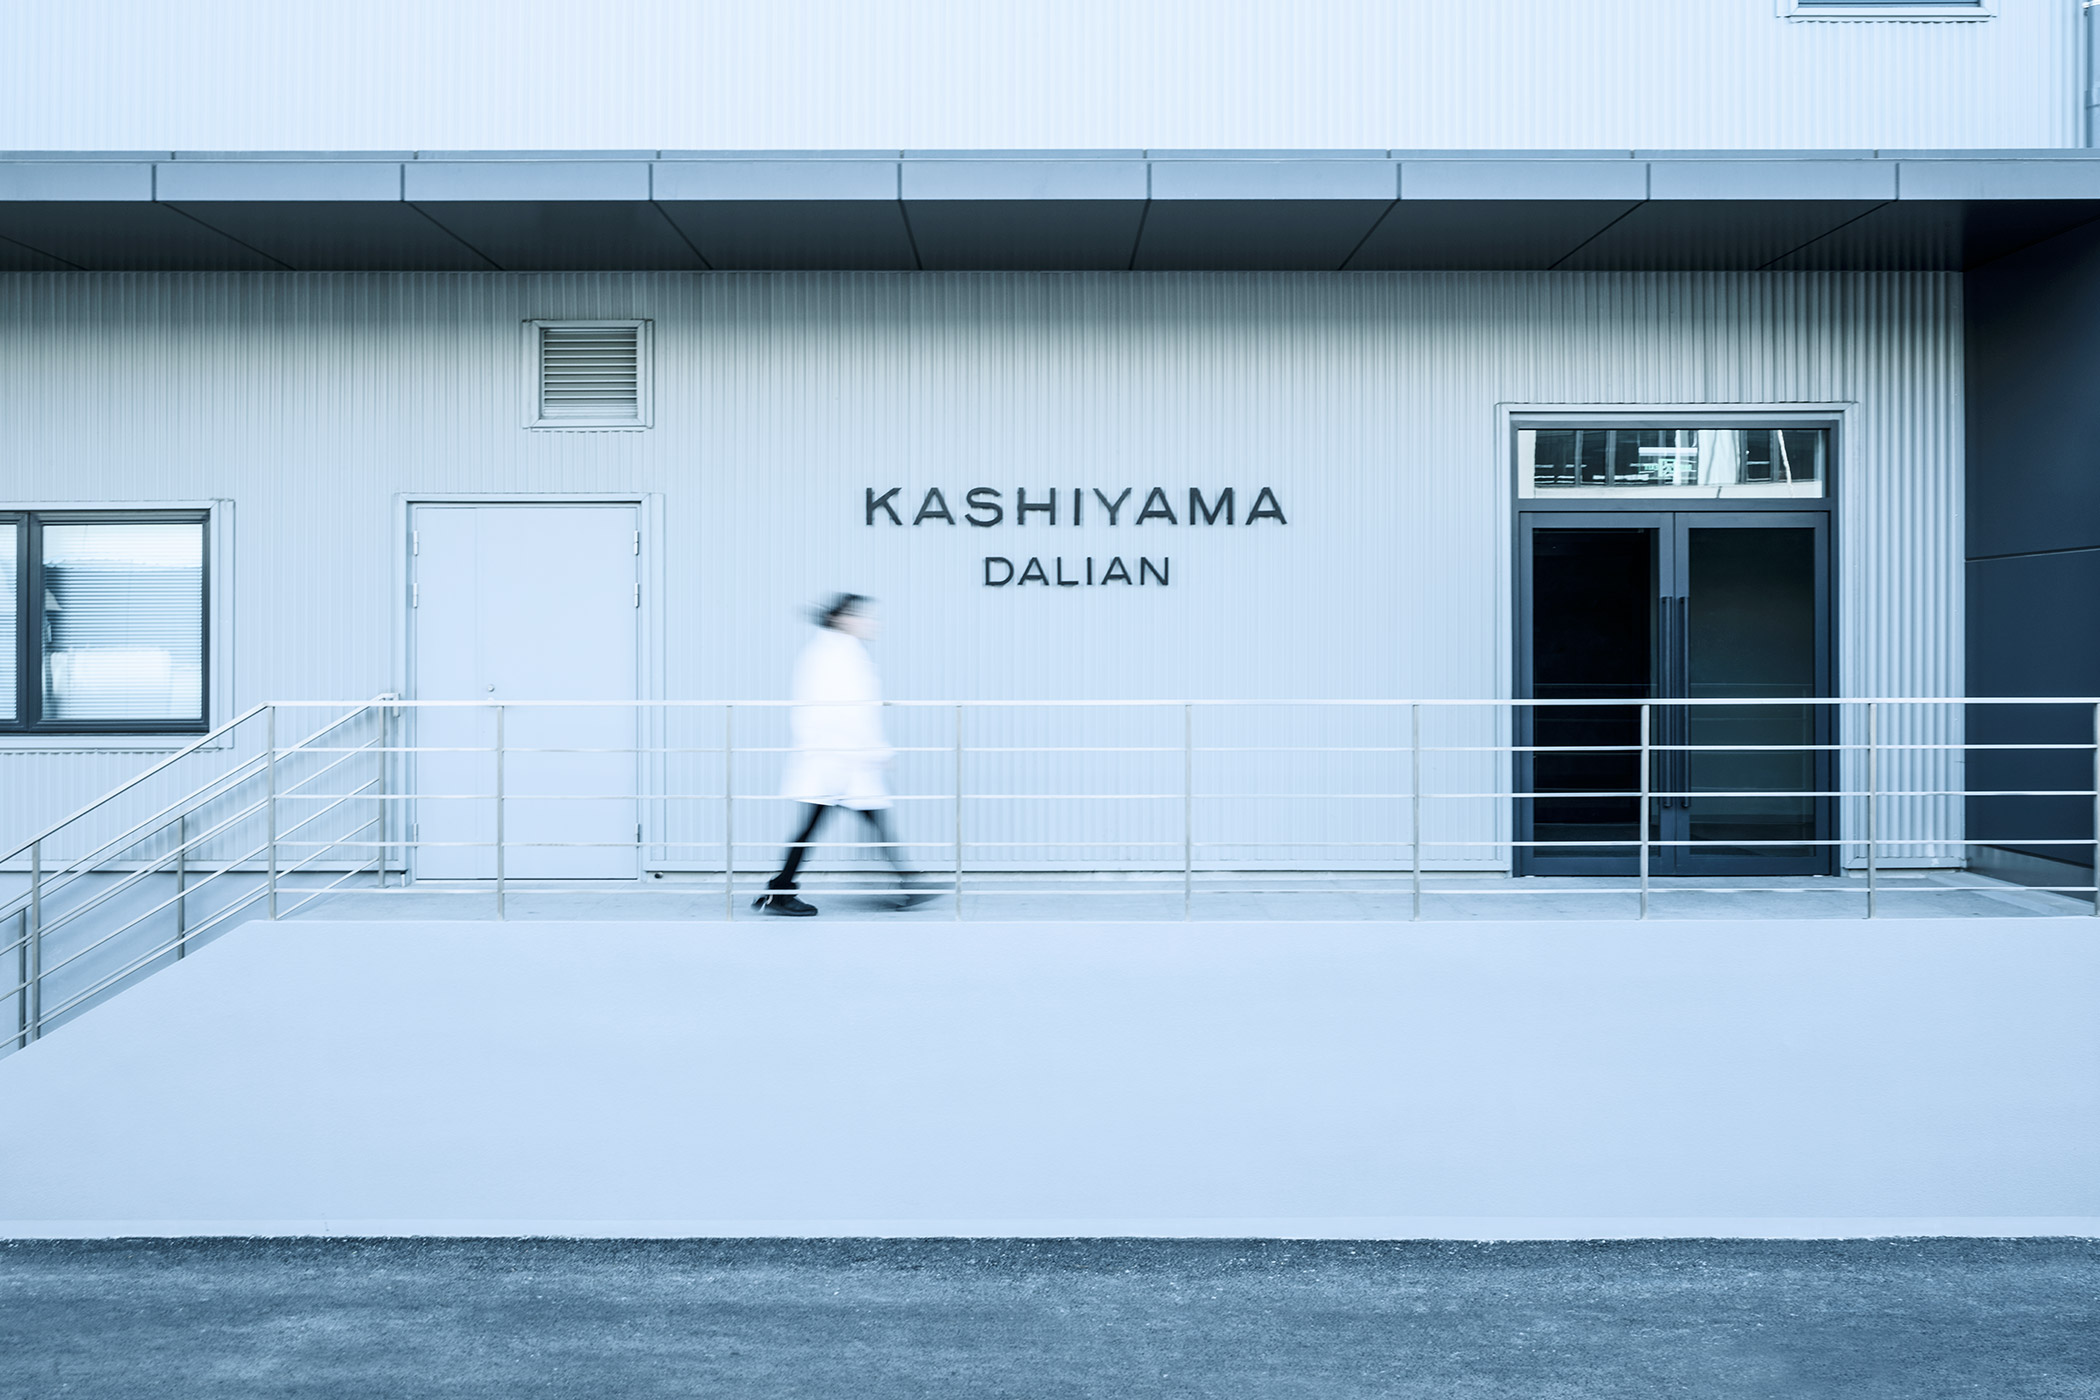 KASHIYAMA the Smart Tailor 大連工場